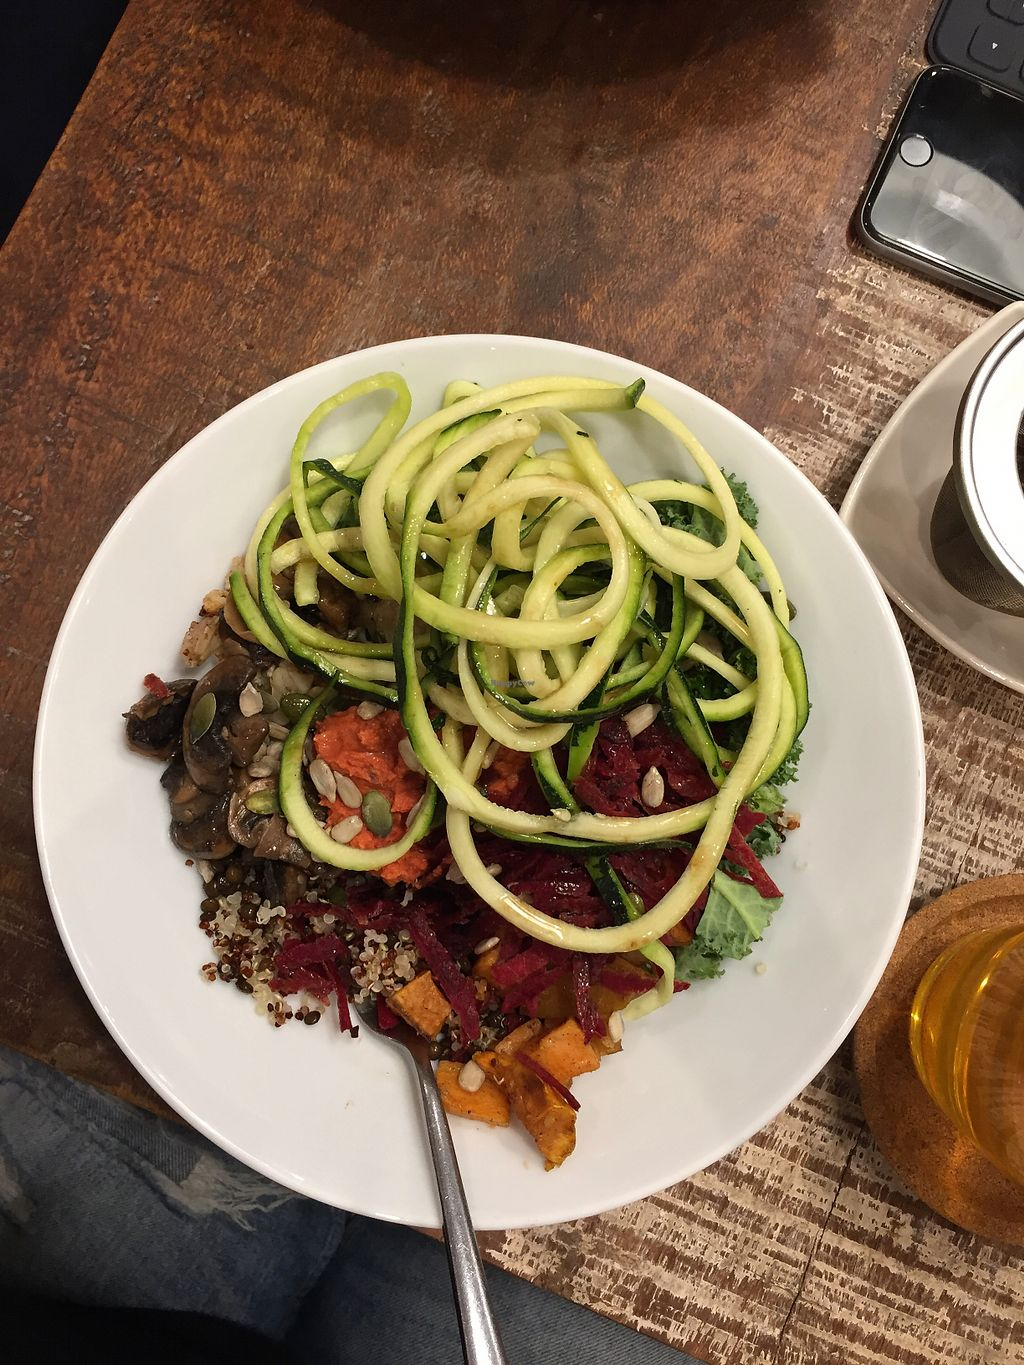 """Photo of Foodies  by <a href=""""/members/profile/nitahannele"""">nitahannele</a> <br/>Vegan bowl <br/> May 23, 2018  - <a href='/contact/abuse/image/100923/403727'>Report</a>"""